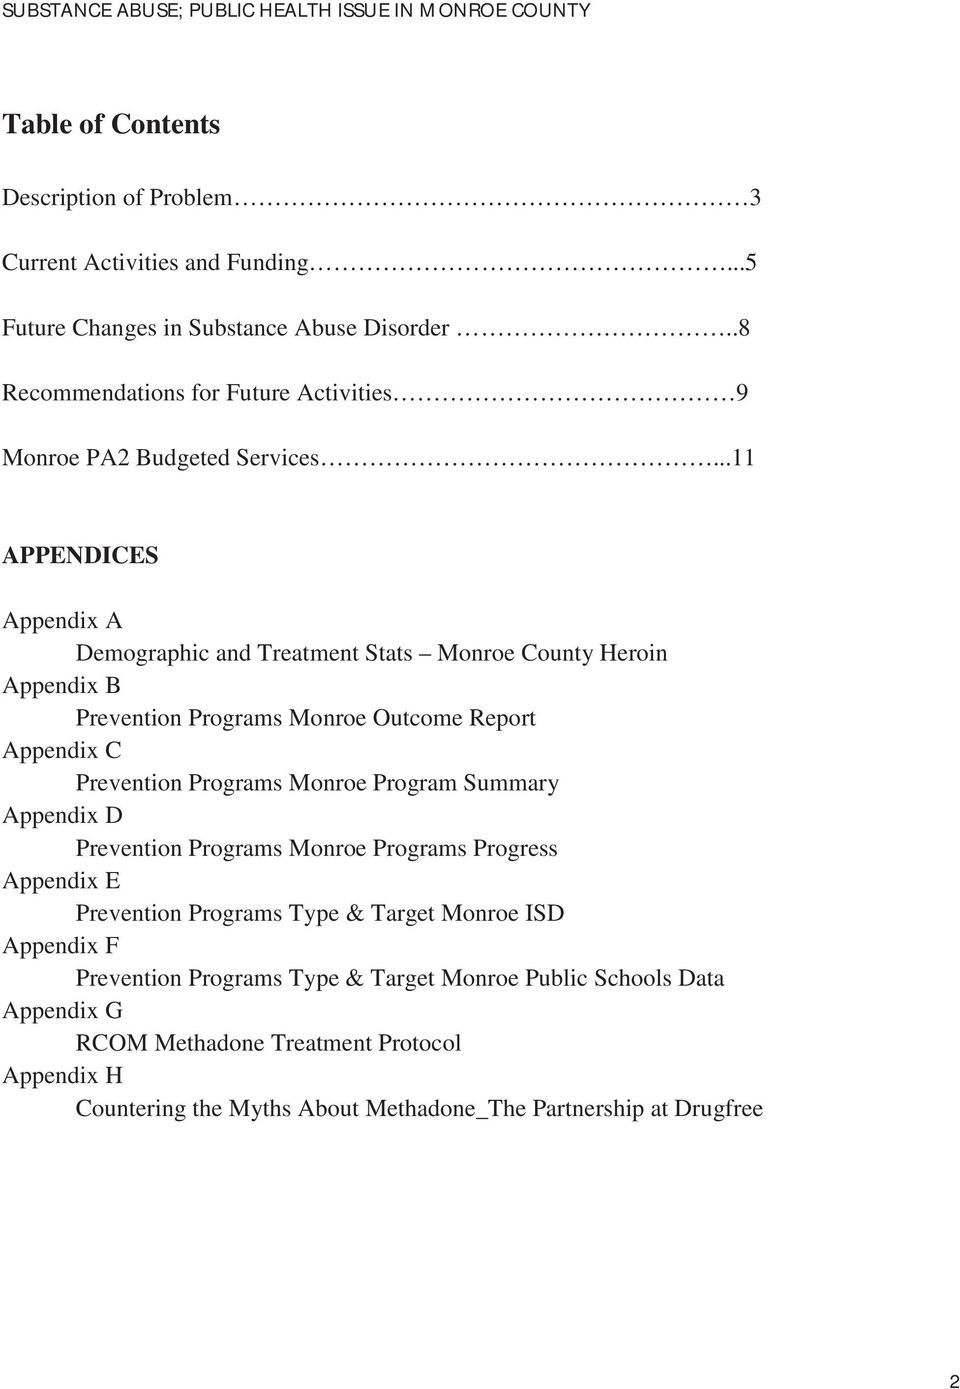 ..11 APPENDICES Appendix A Demographic and Treatment Stats Monroe County Heroin Appendix B Prevention Programs Monroe Outcome Report Appendix C Prevention Programs Monroe Program